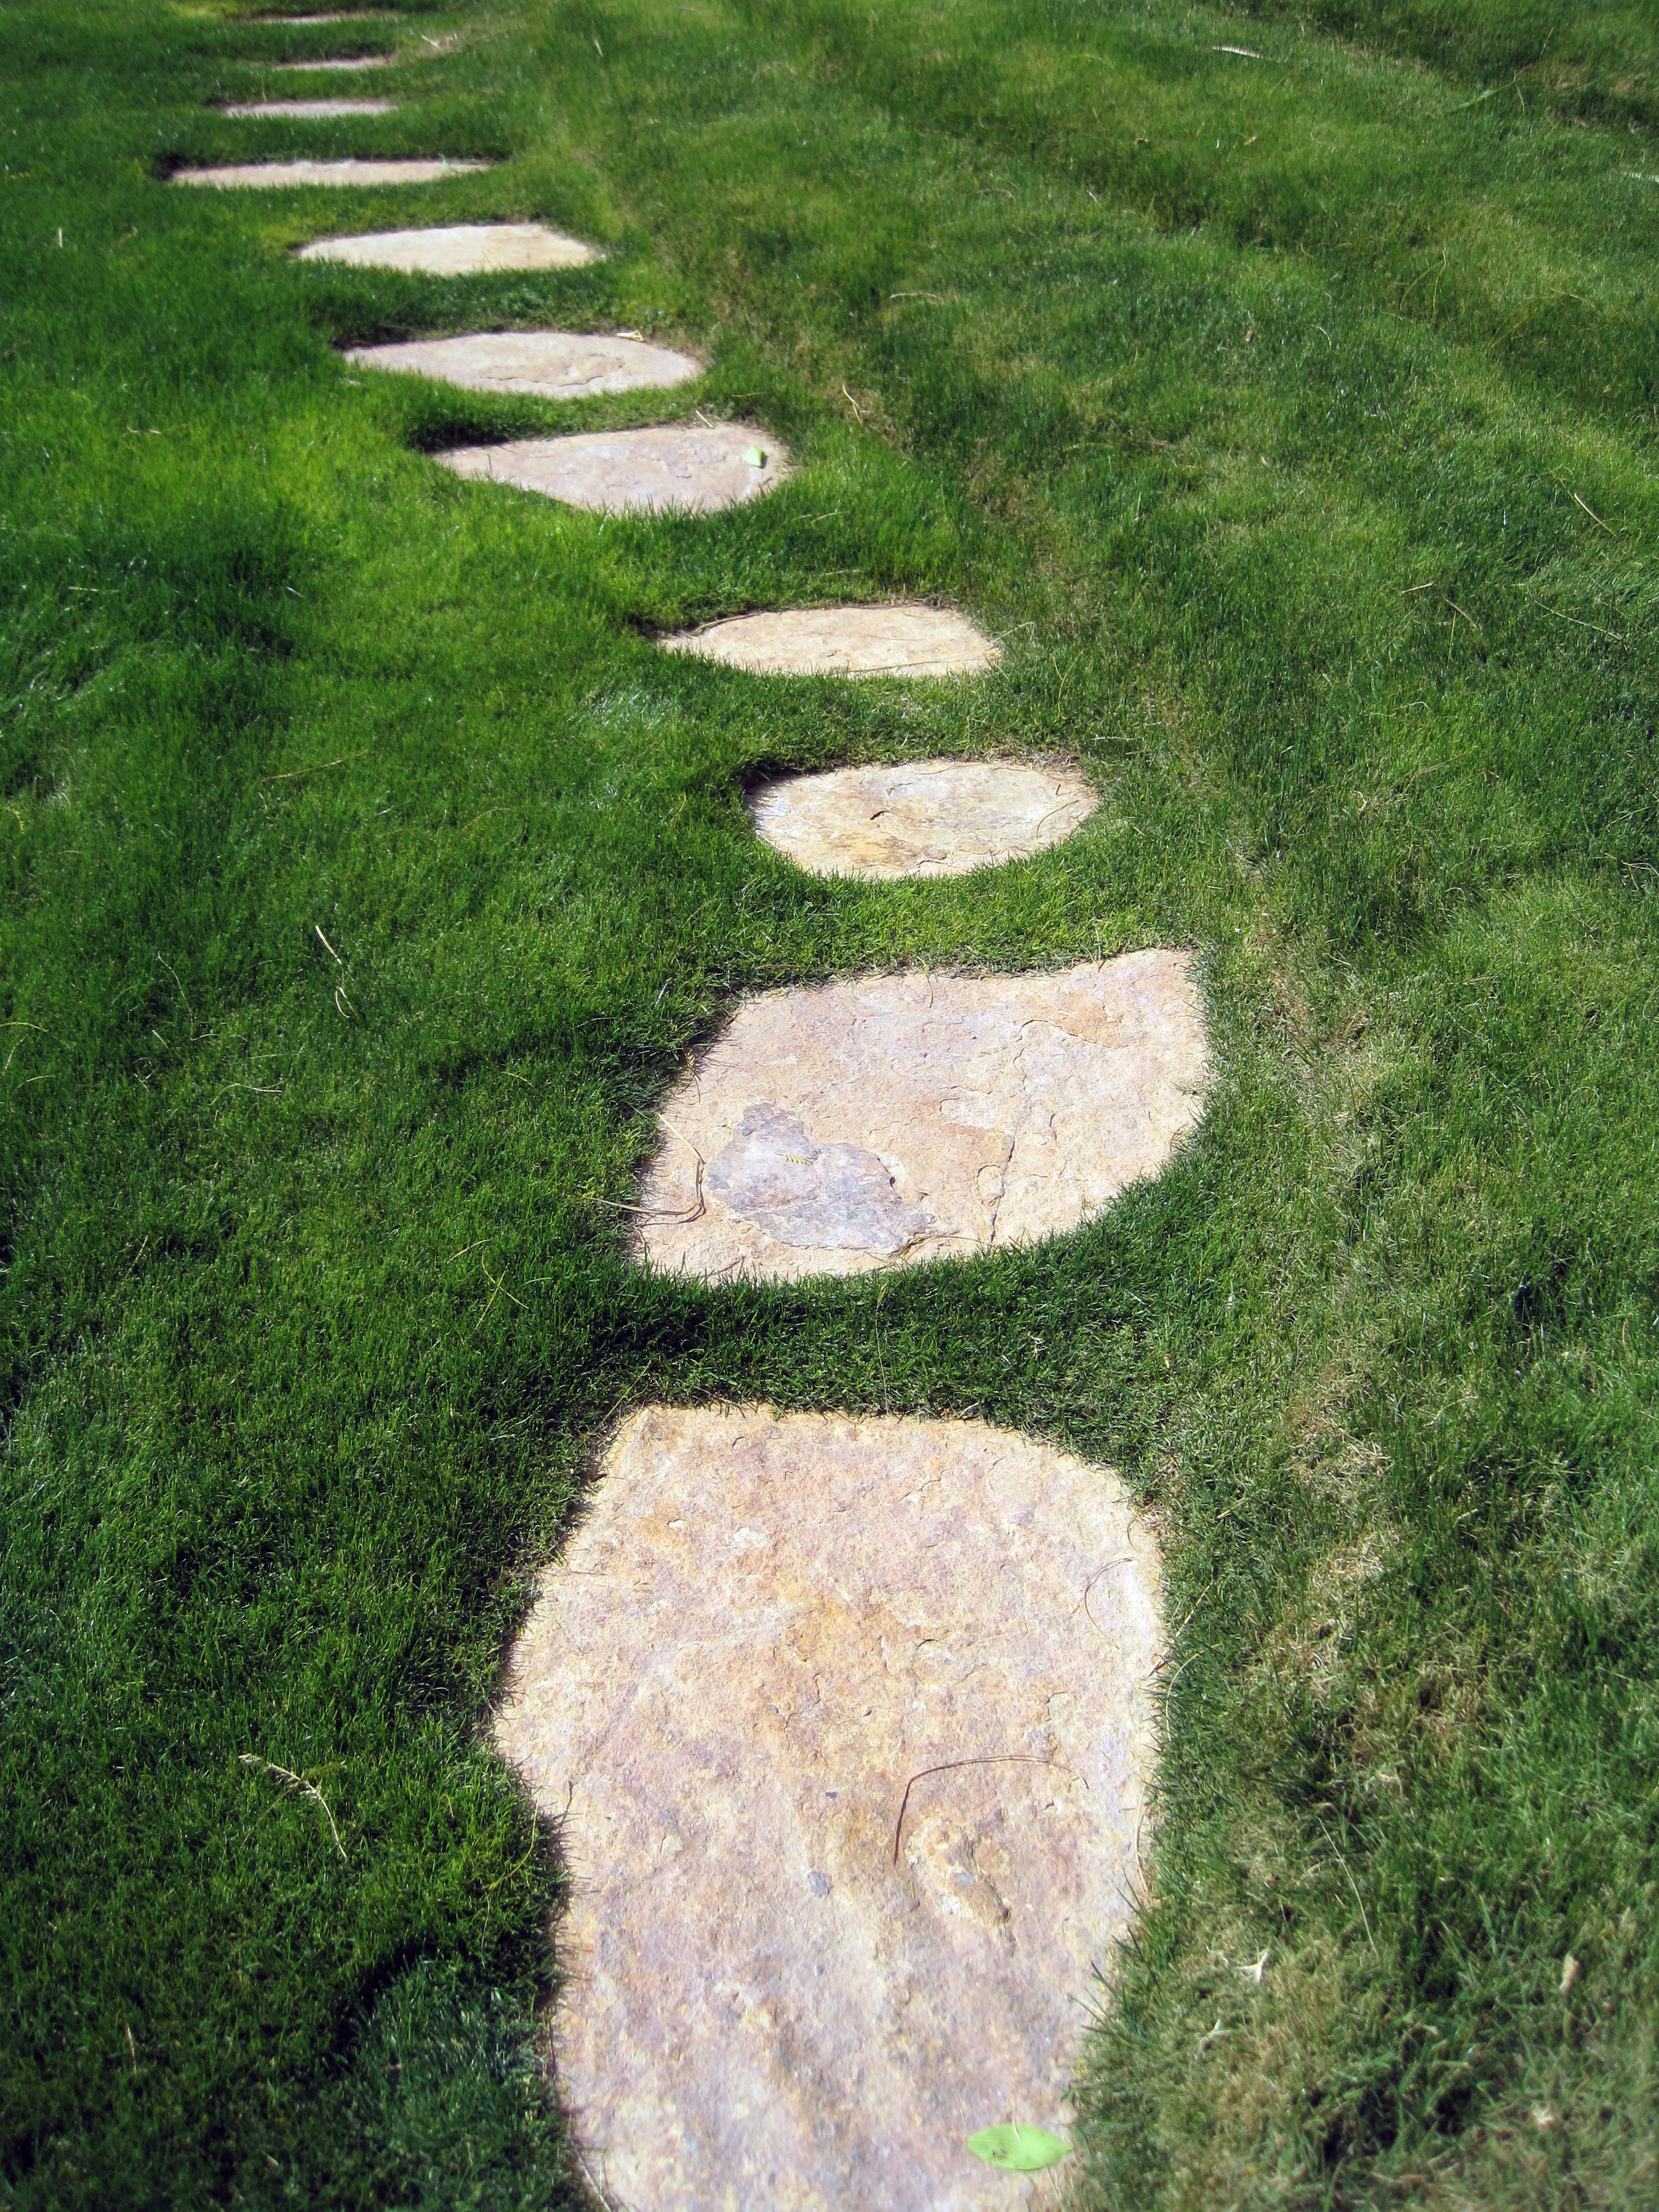 Stone Pathway and Journey Forward